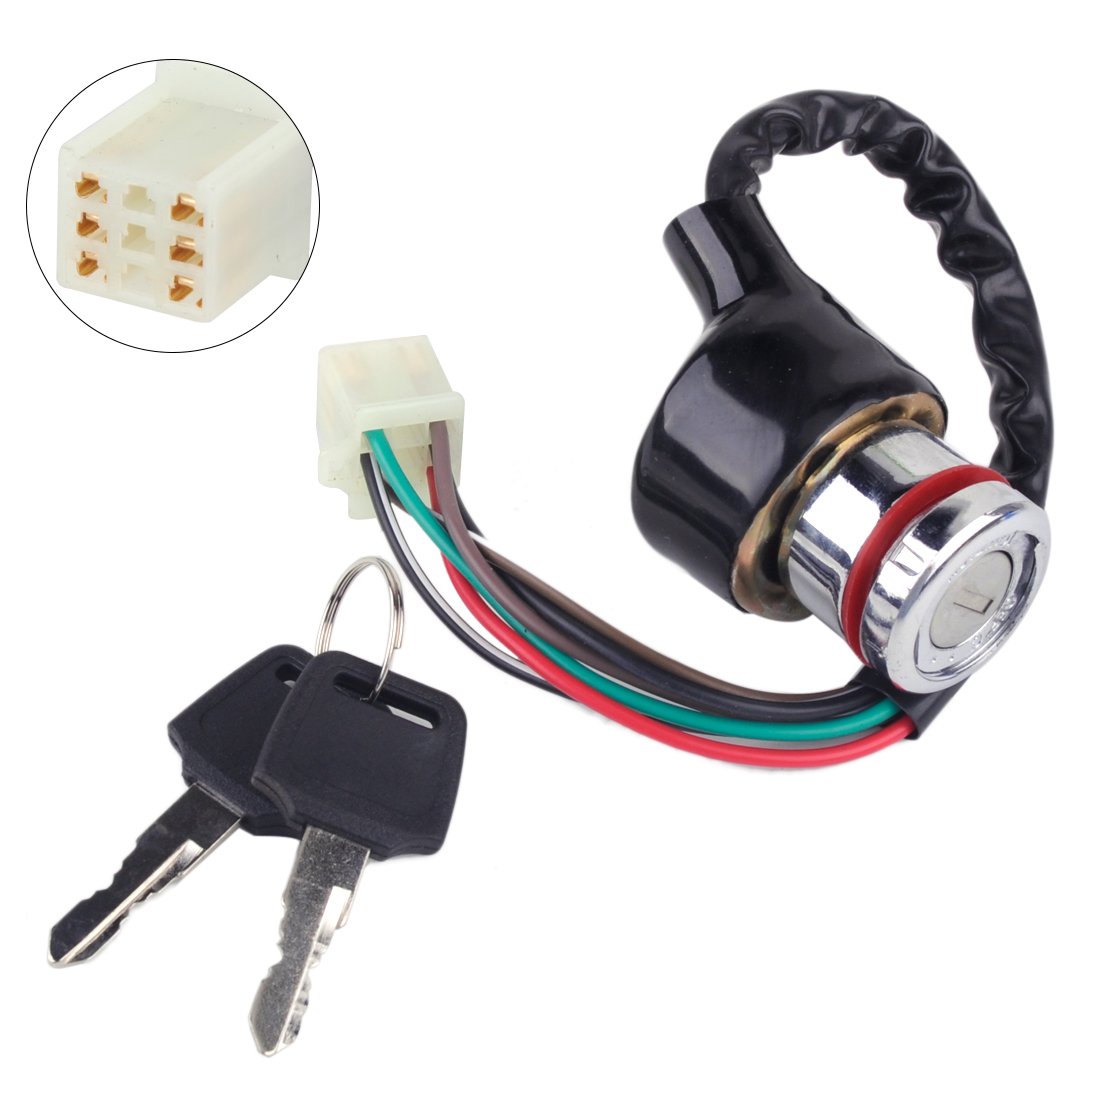 6 Wire Ignition Barrel Switch /& Key For Motorcycle Scooter Bike Quad Go-Kart ATV